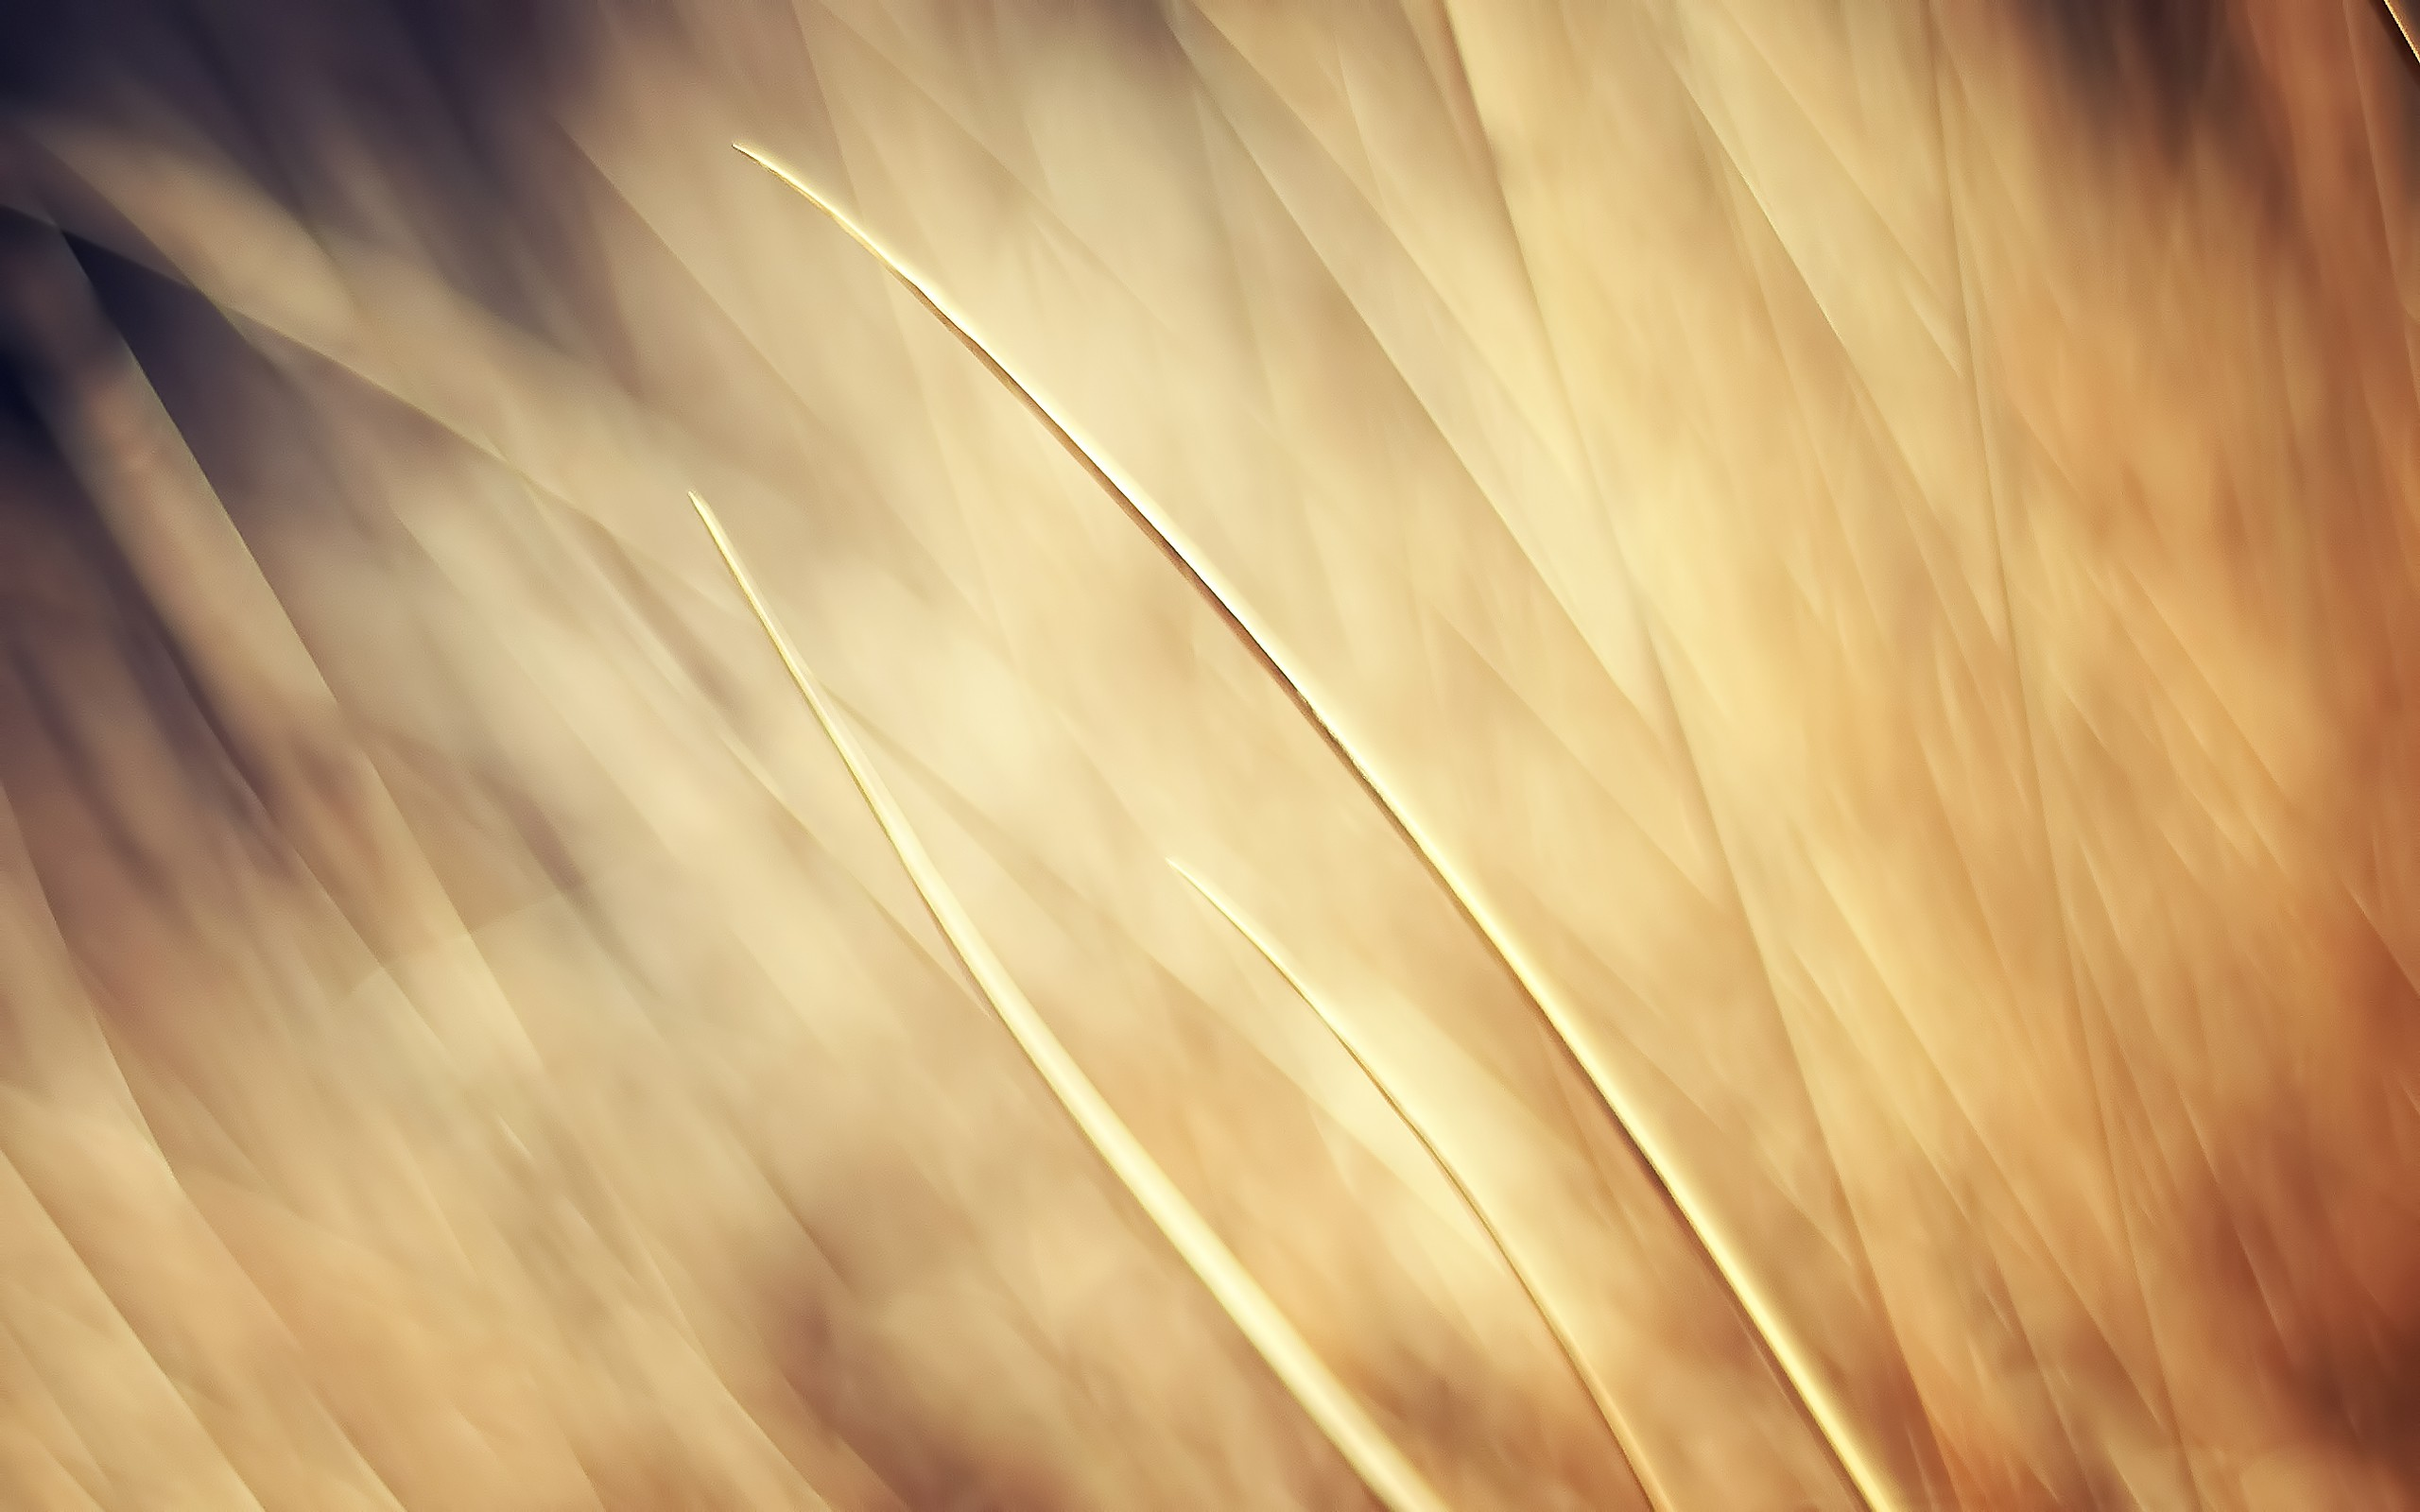 Download wallpaper beige abstraction on wheat field 2560x1600